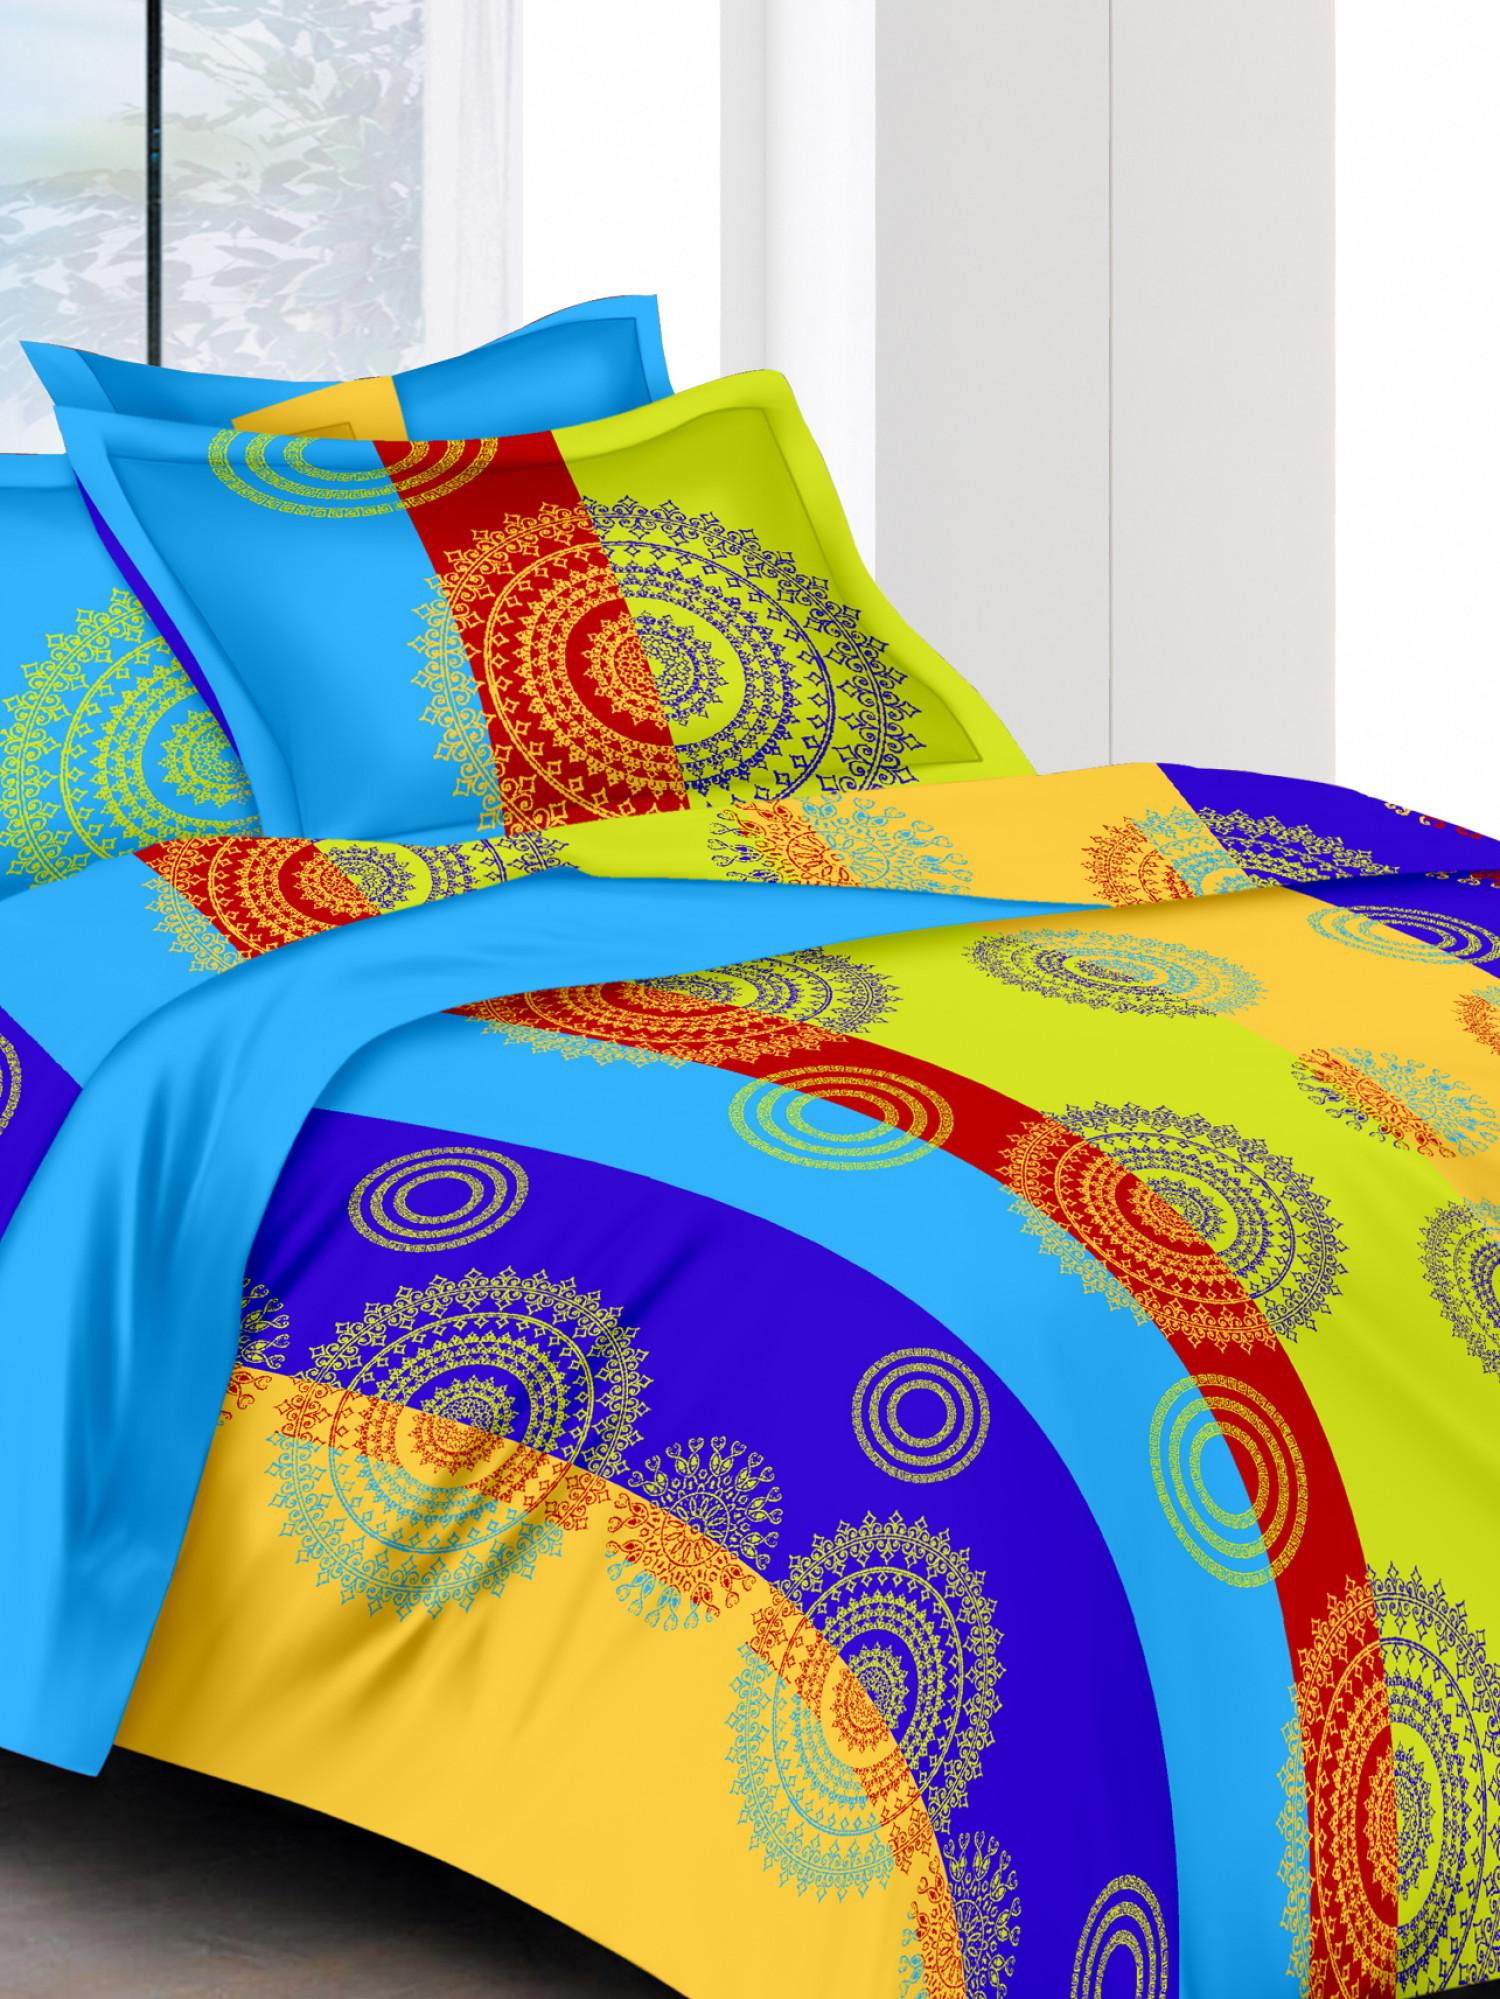 abstract bedsheet